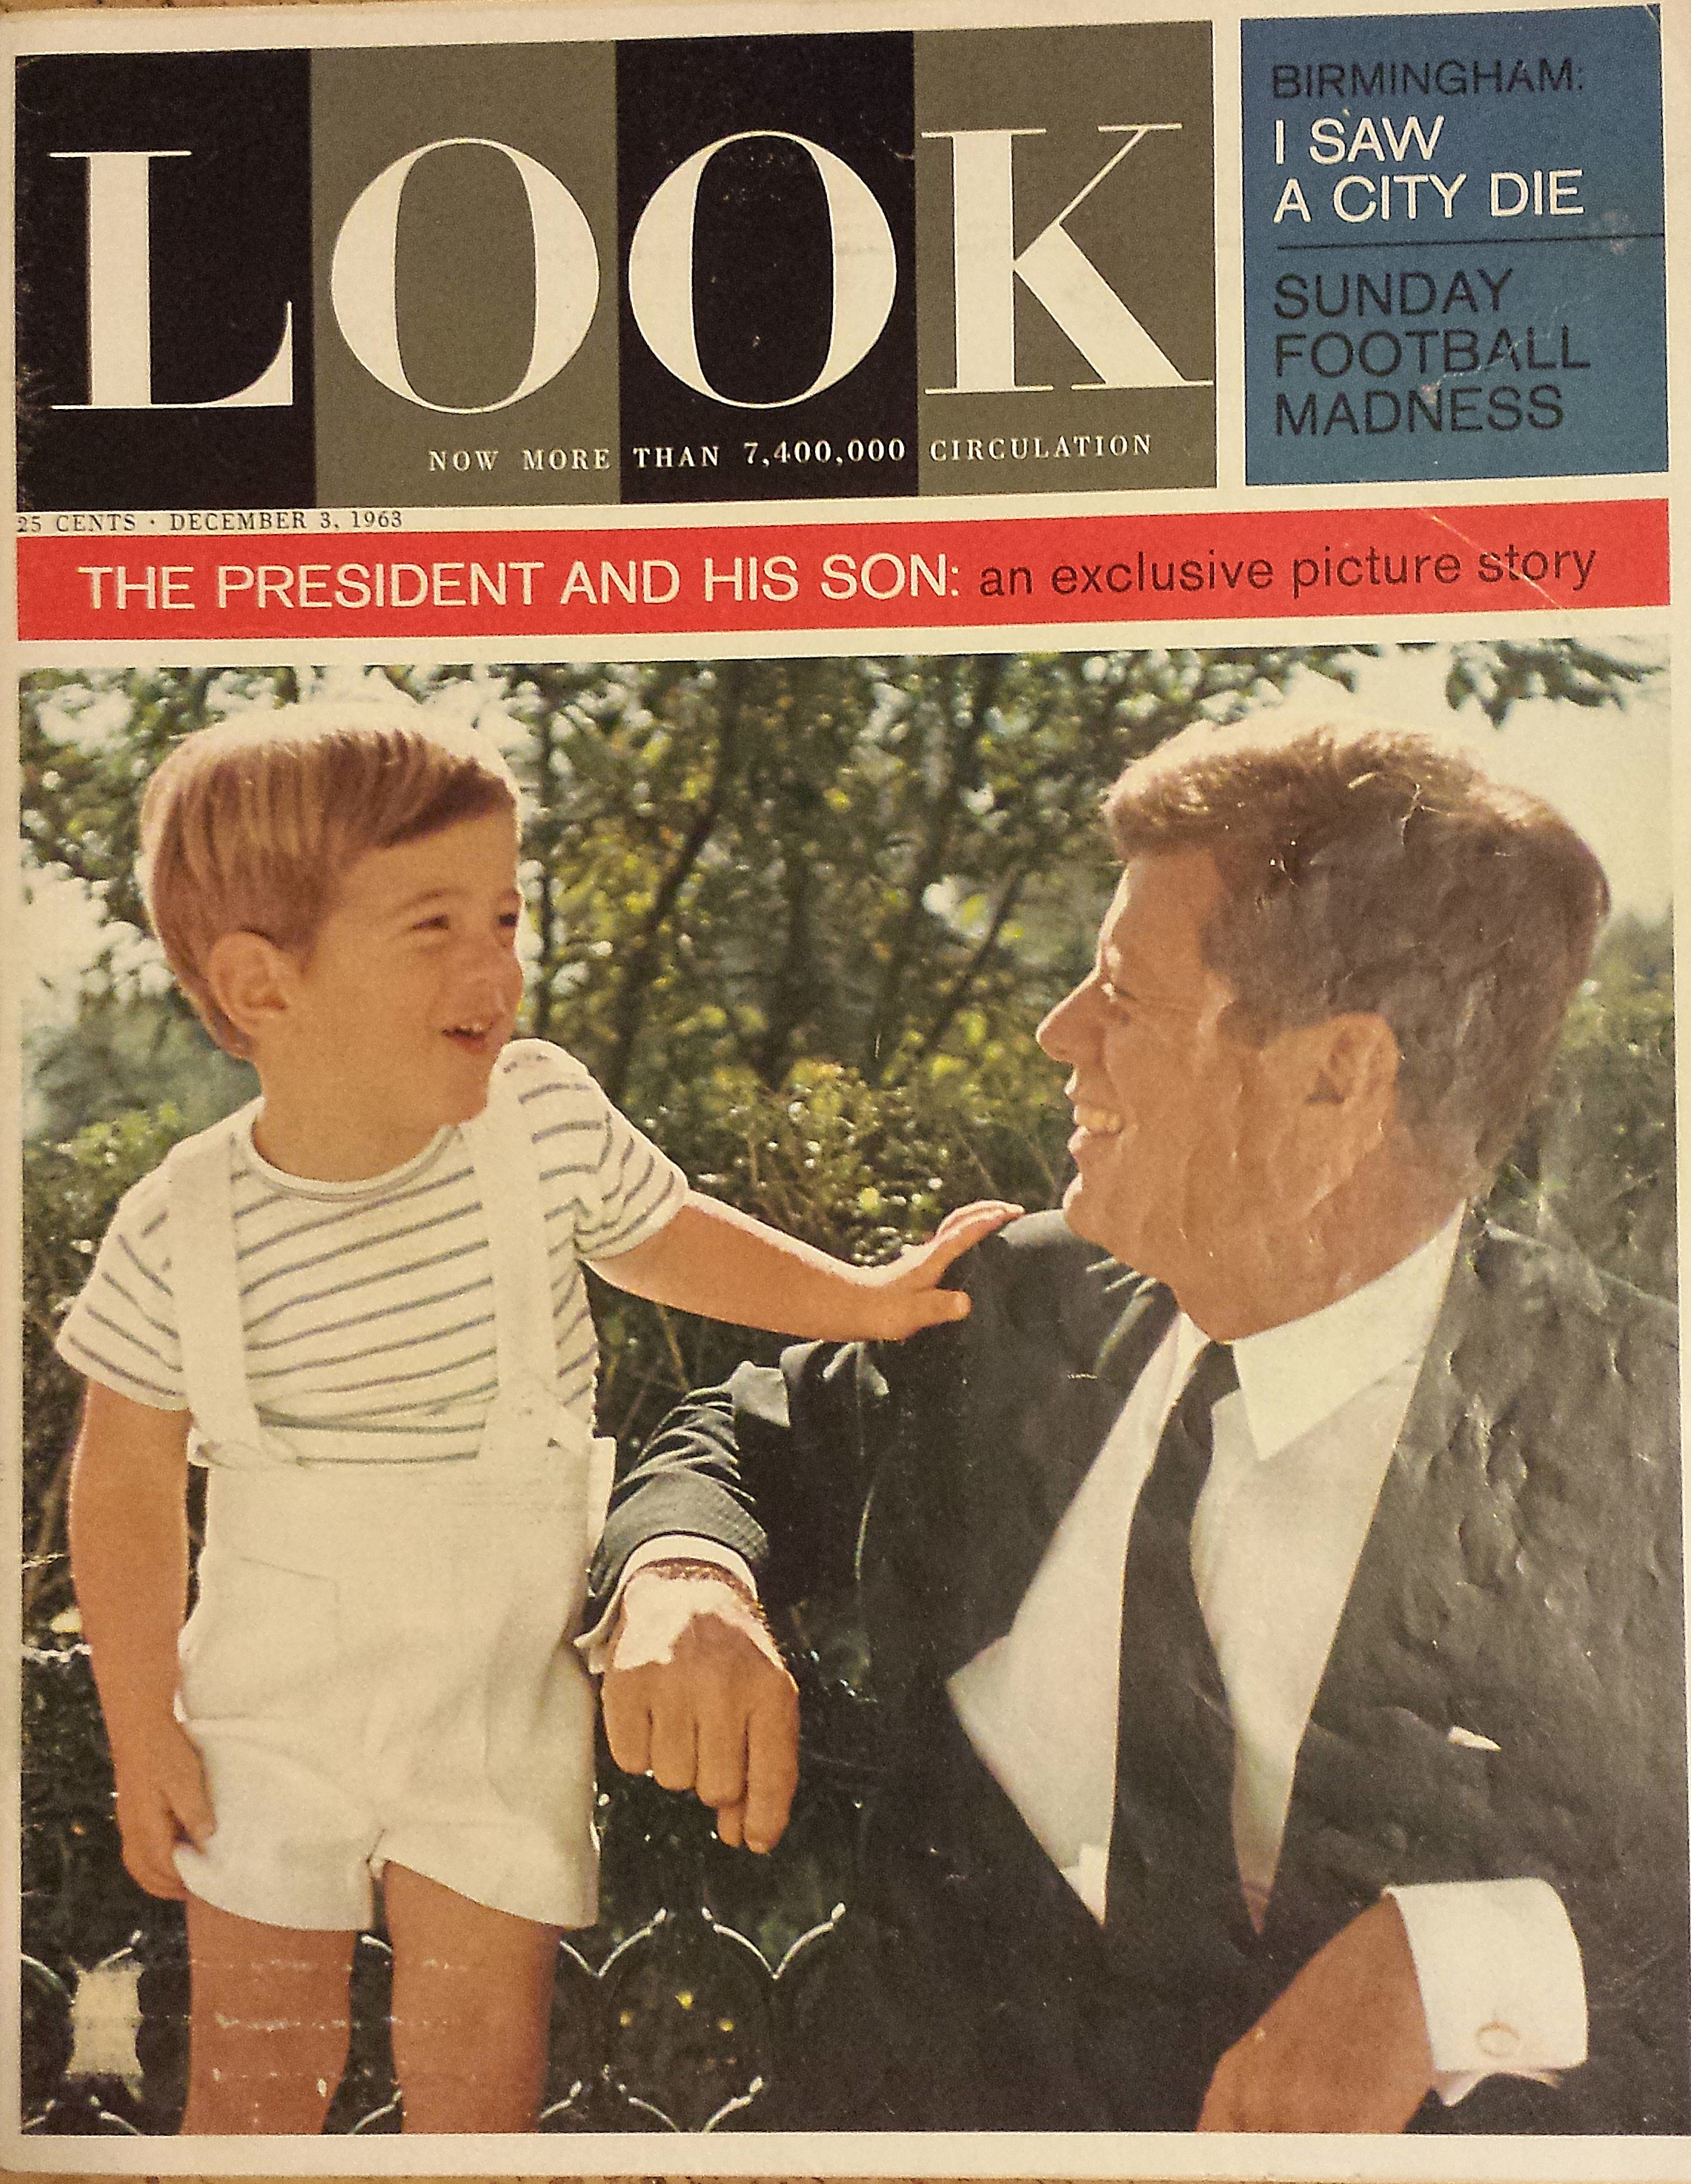 on the life of jacqueline kennedy onassis president john f kennedy and ...